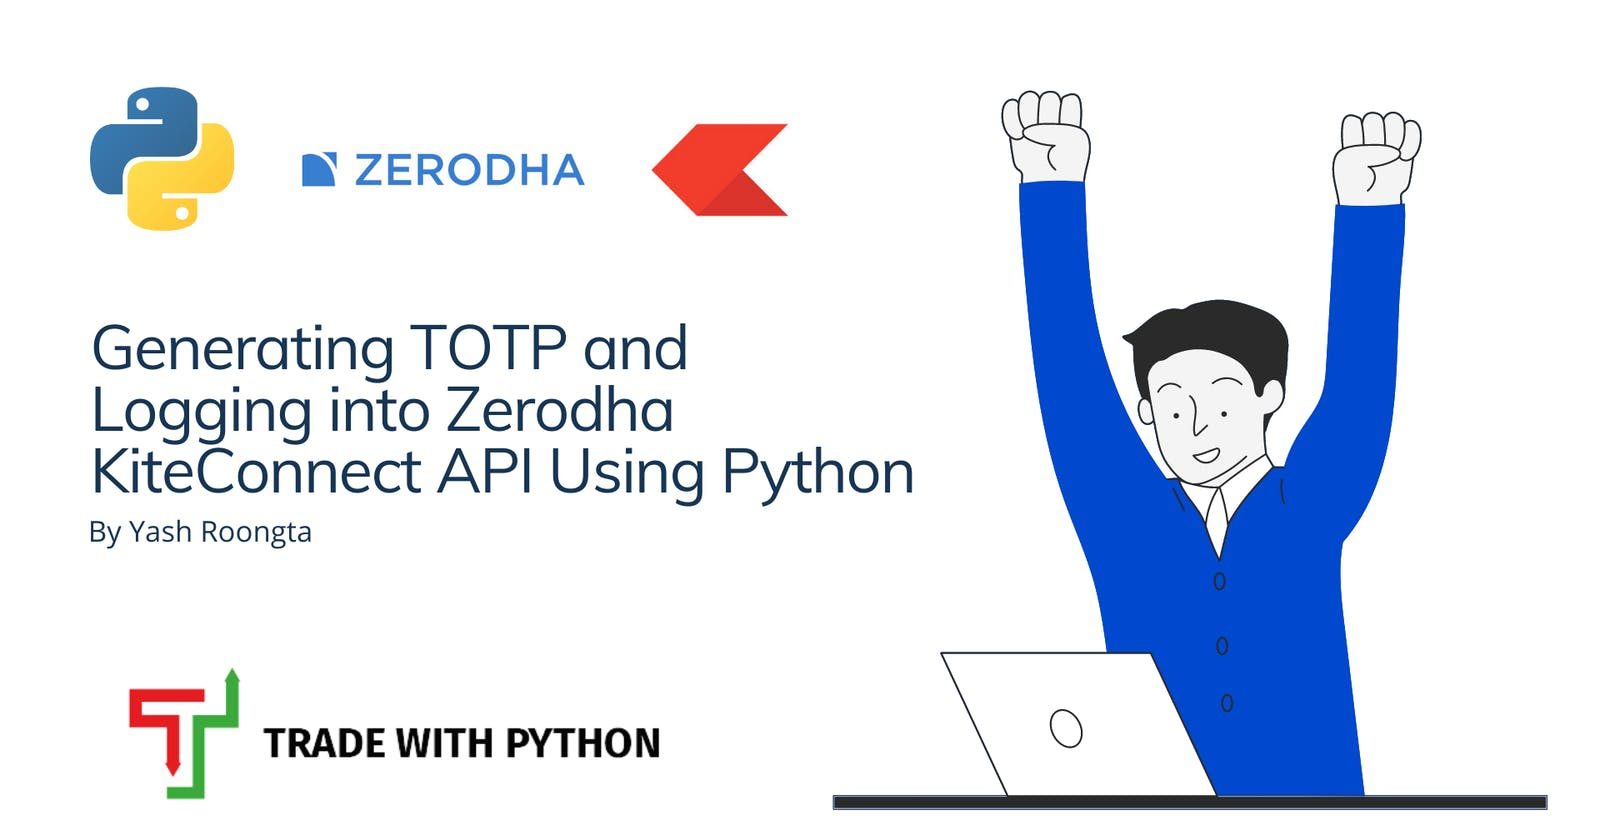 What's TOTP and How to generate It to Login into Zerodha Kite API using Python?